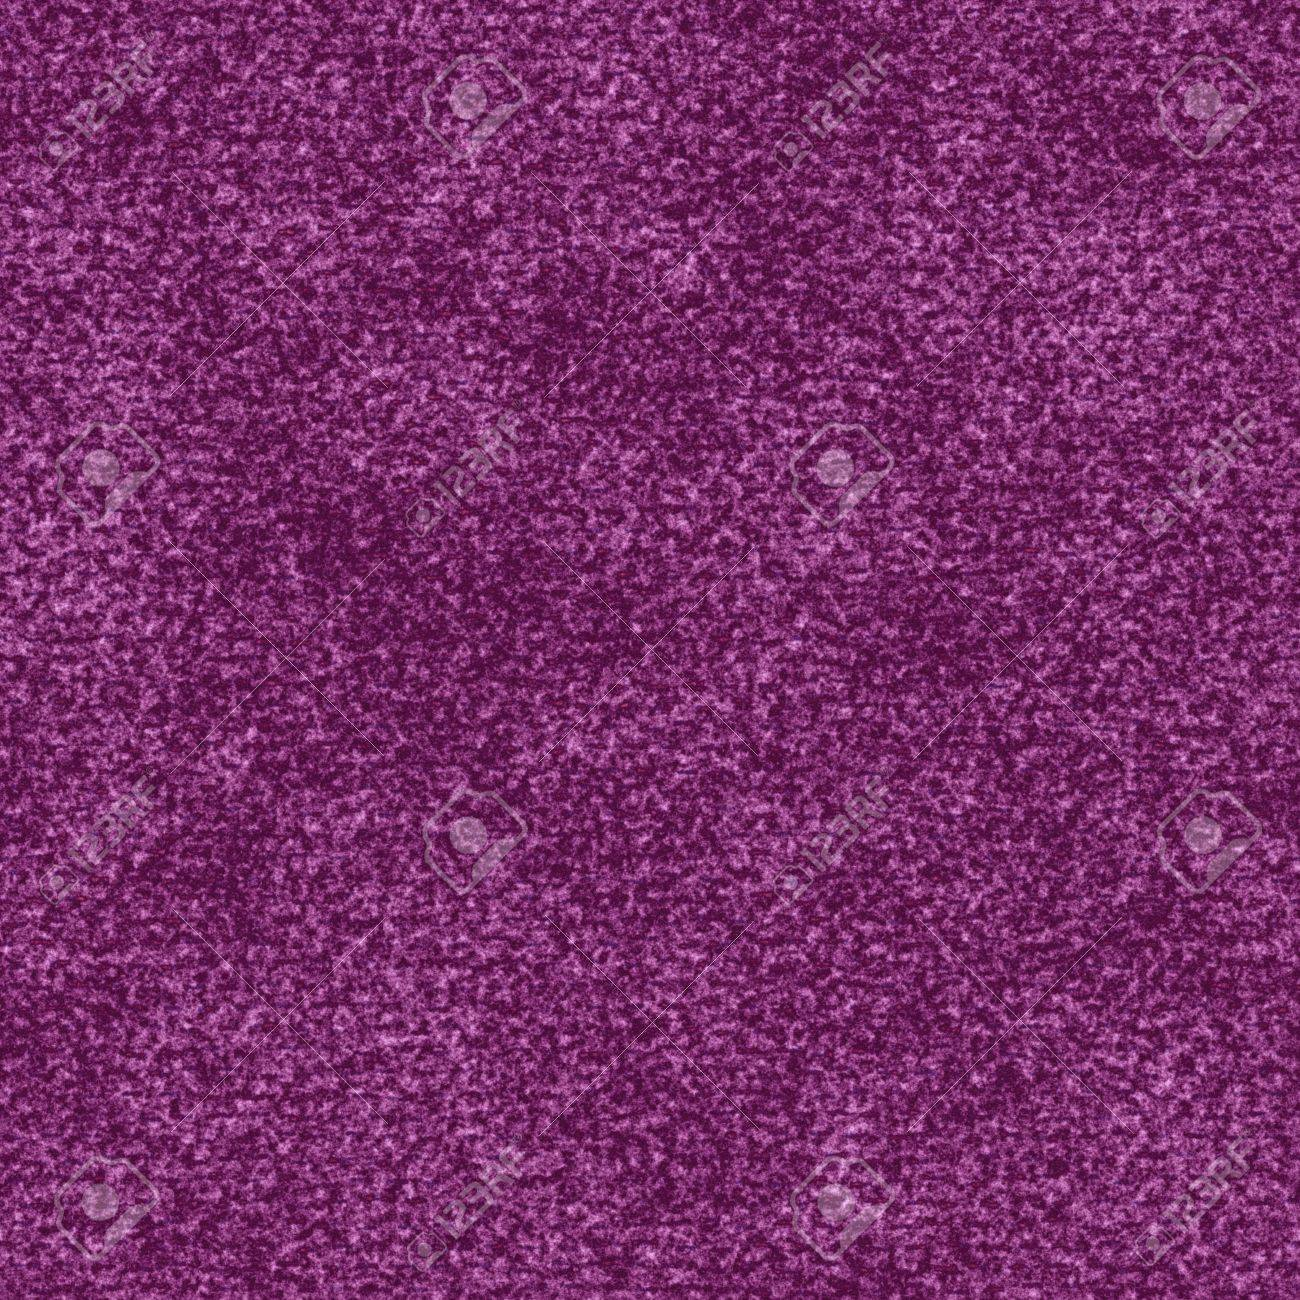 background of pink carpet pattern texture flooring stock photo 17562836 x73 texture